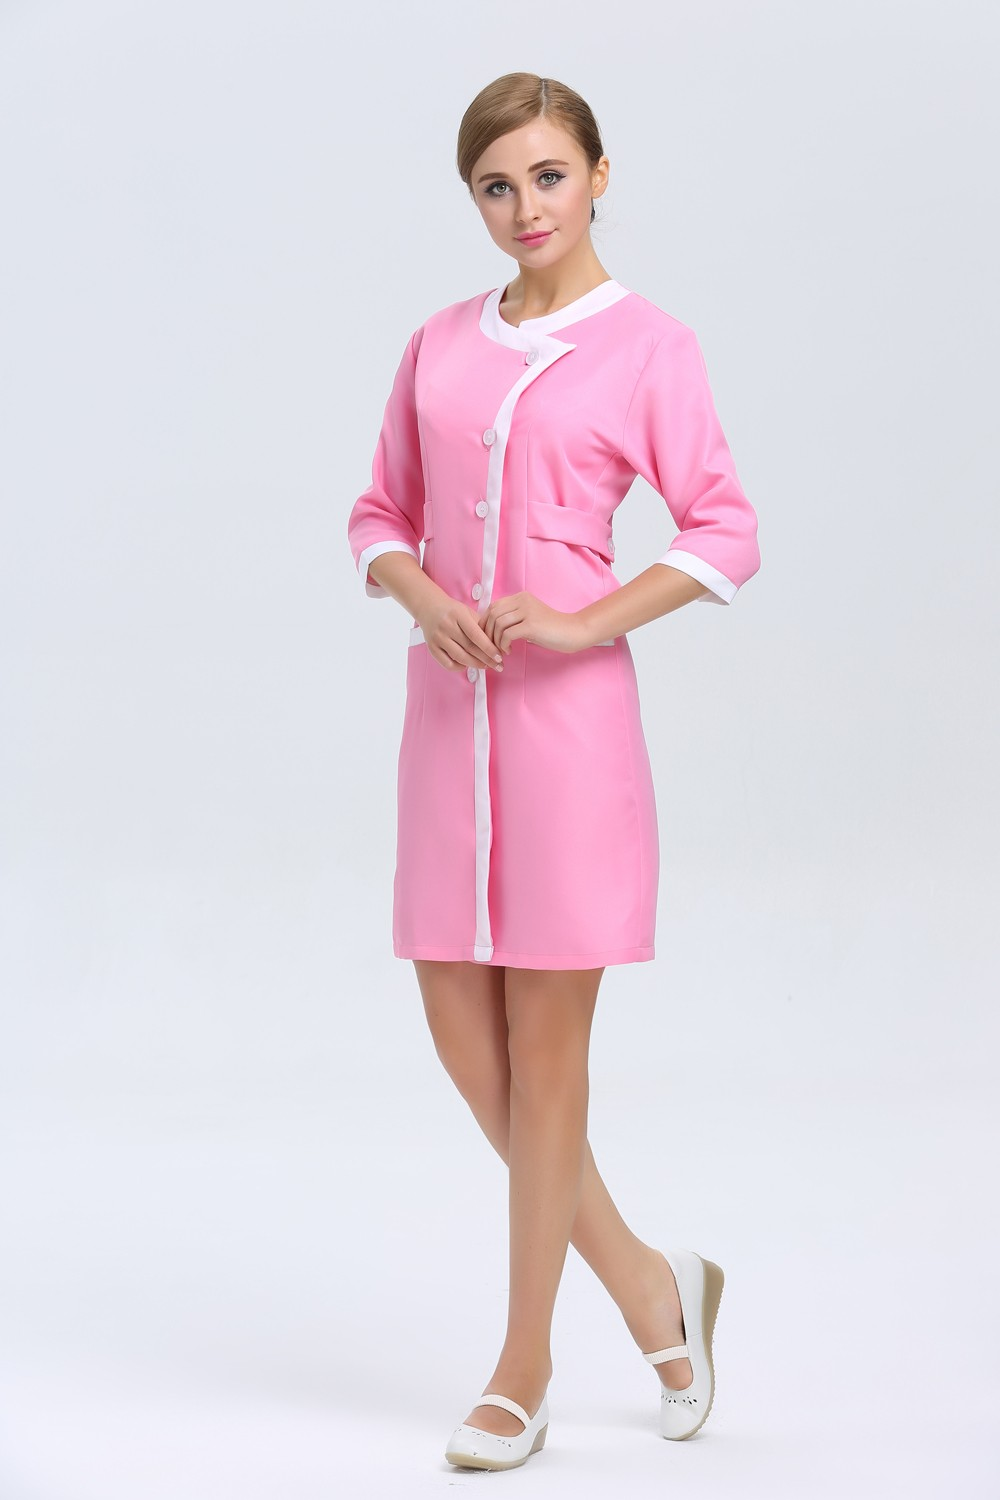 Spa uniform from europe pictures to pin on pinterest for Spa employee uniform